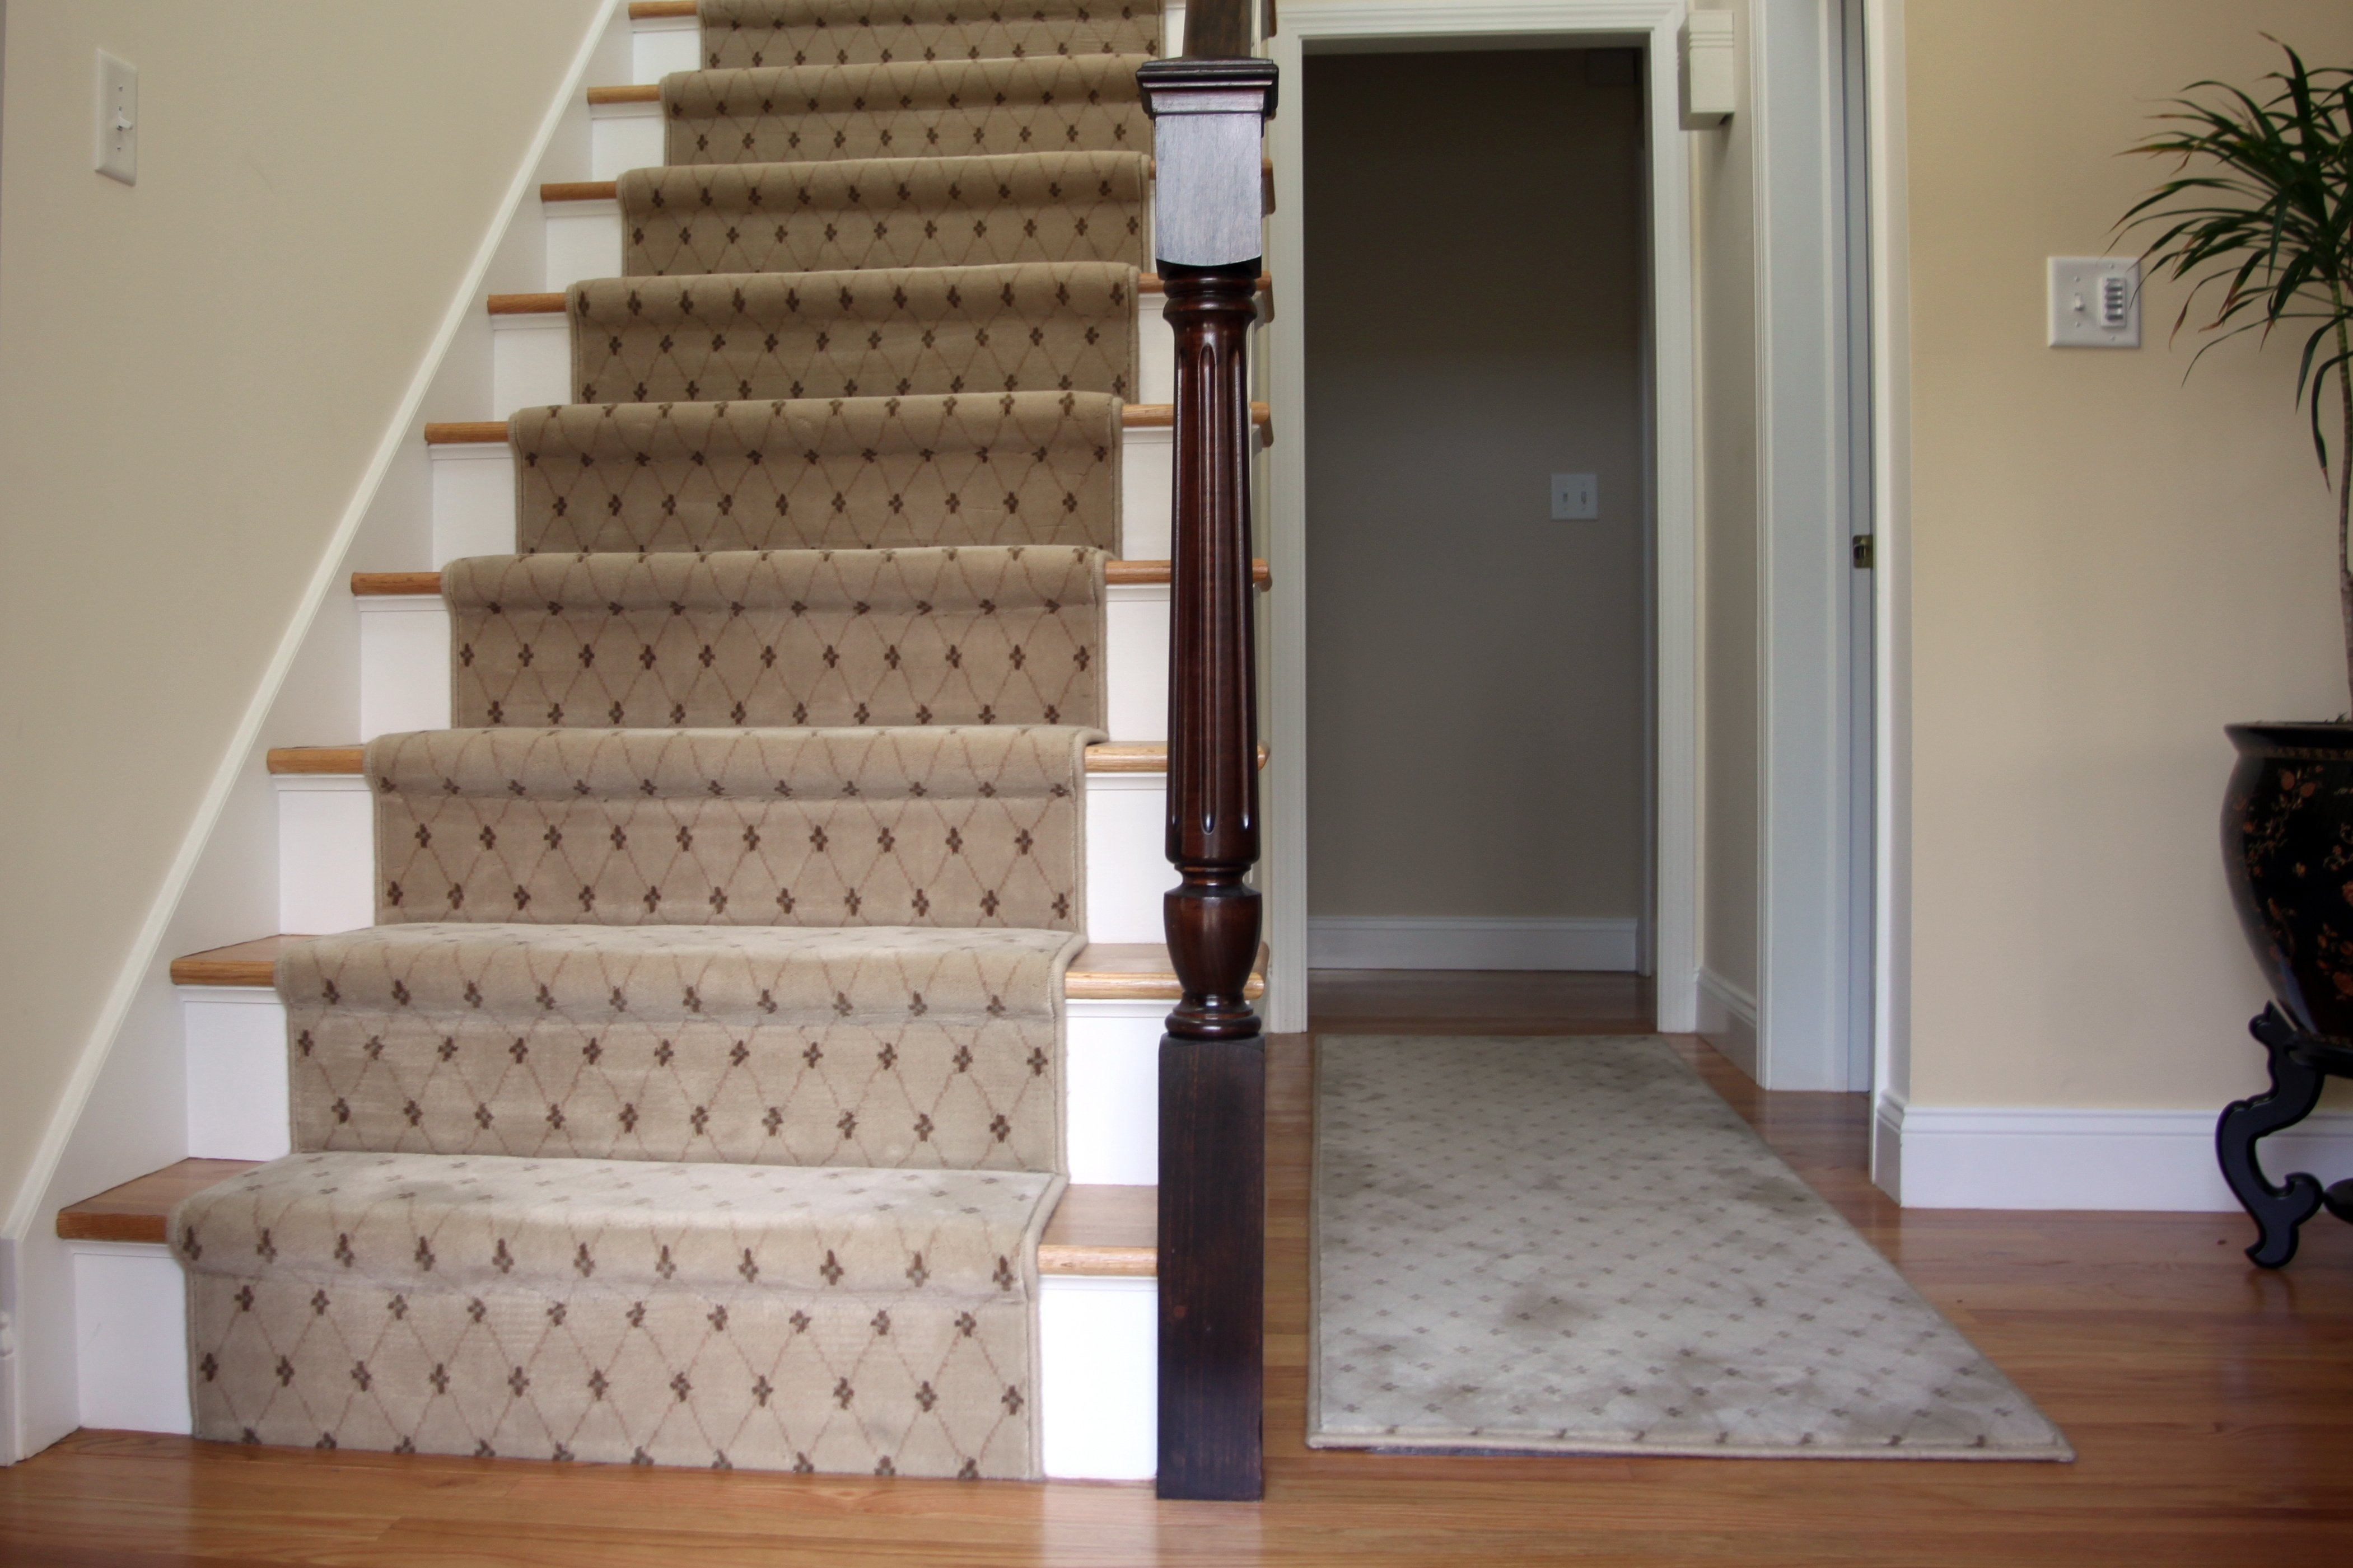 about hall stairs and landing ideas of stair runner carpet